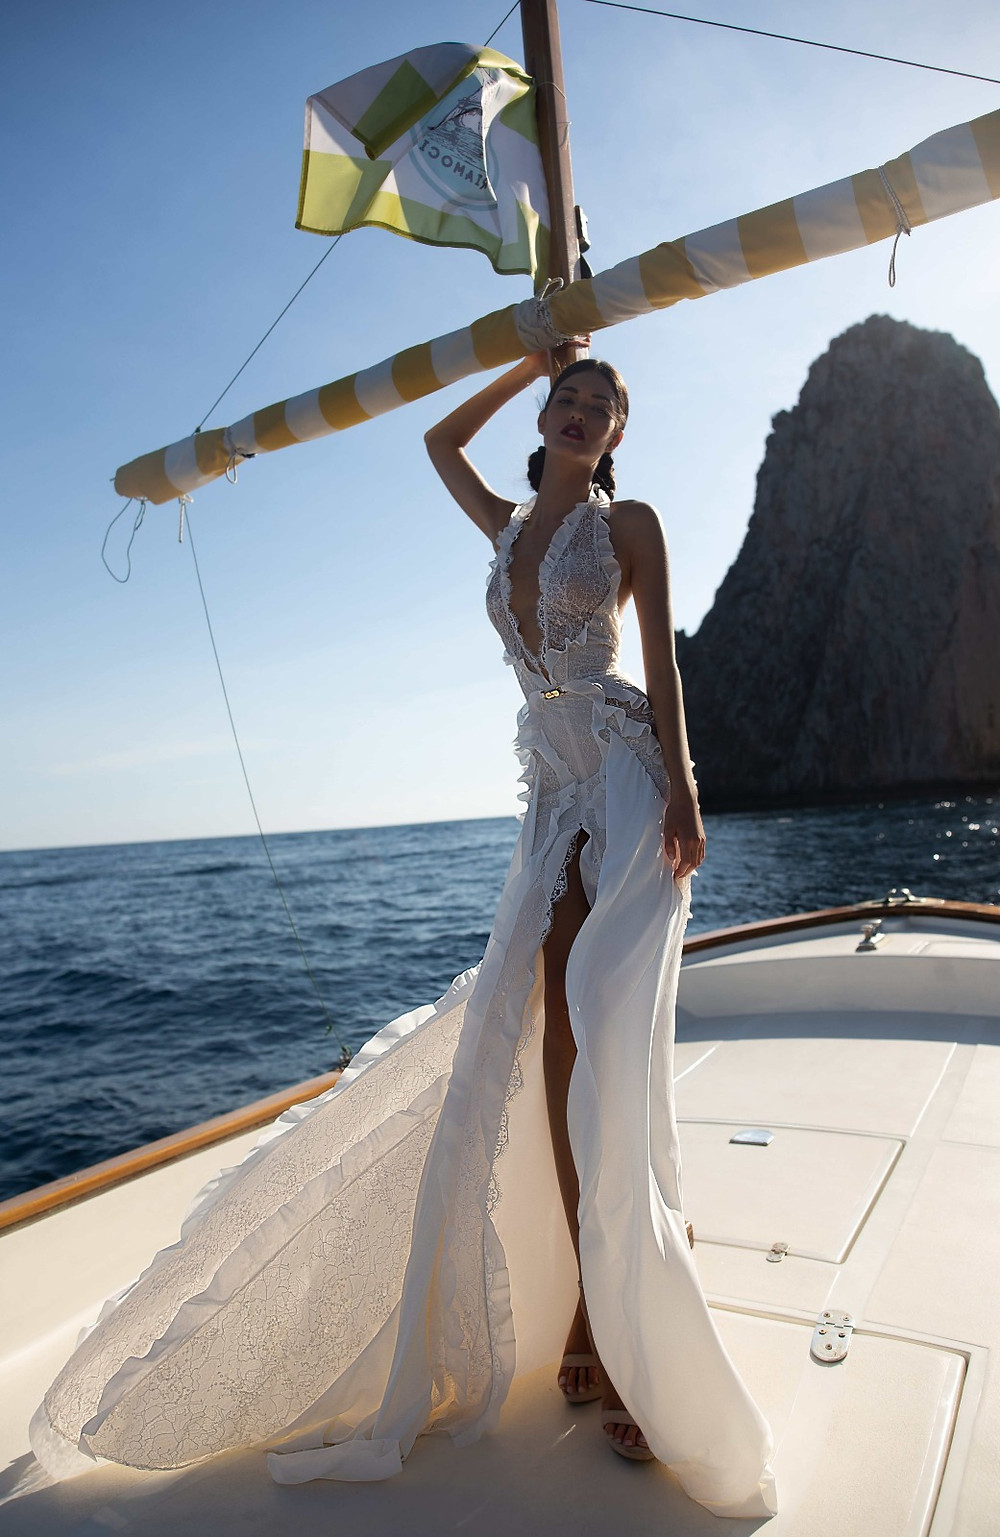 An Inbal Dror halterneck sexy wedding dress with a high slit